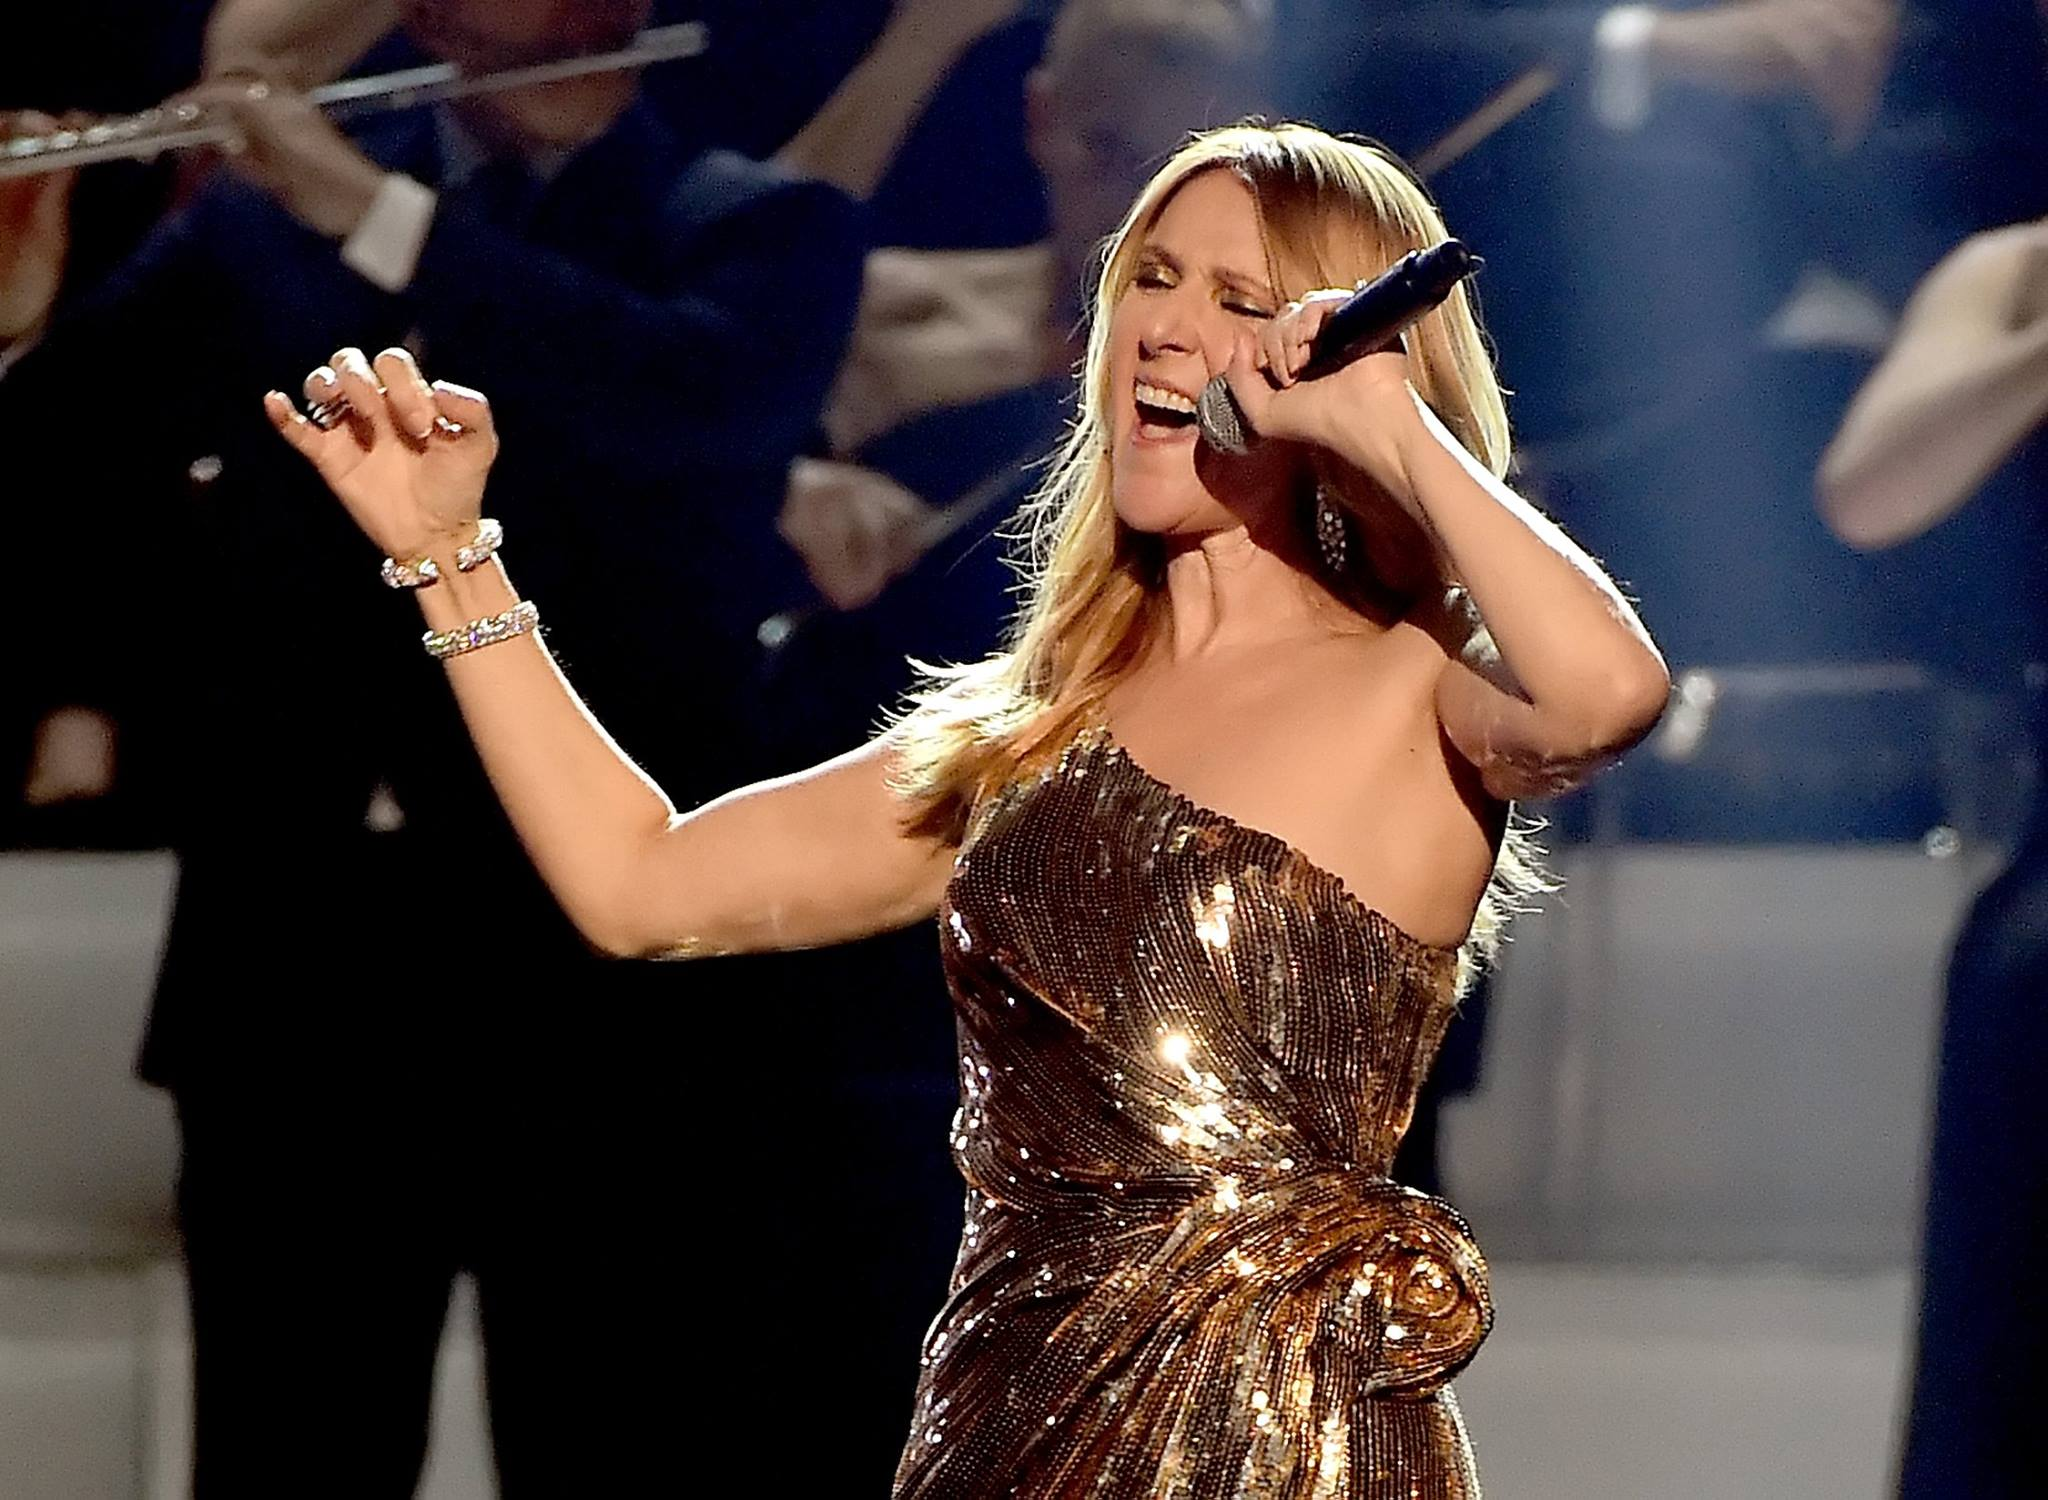 Celine Dion gives KL a miss in Southeast Asian tour